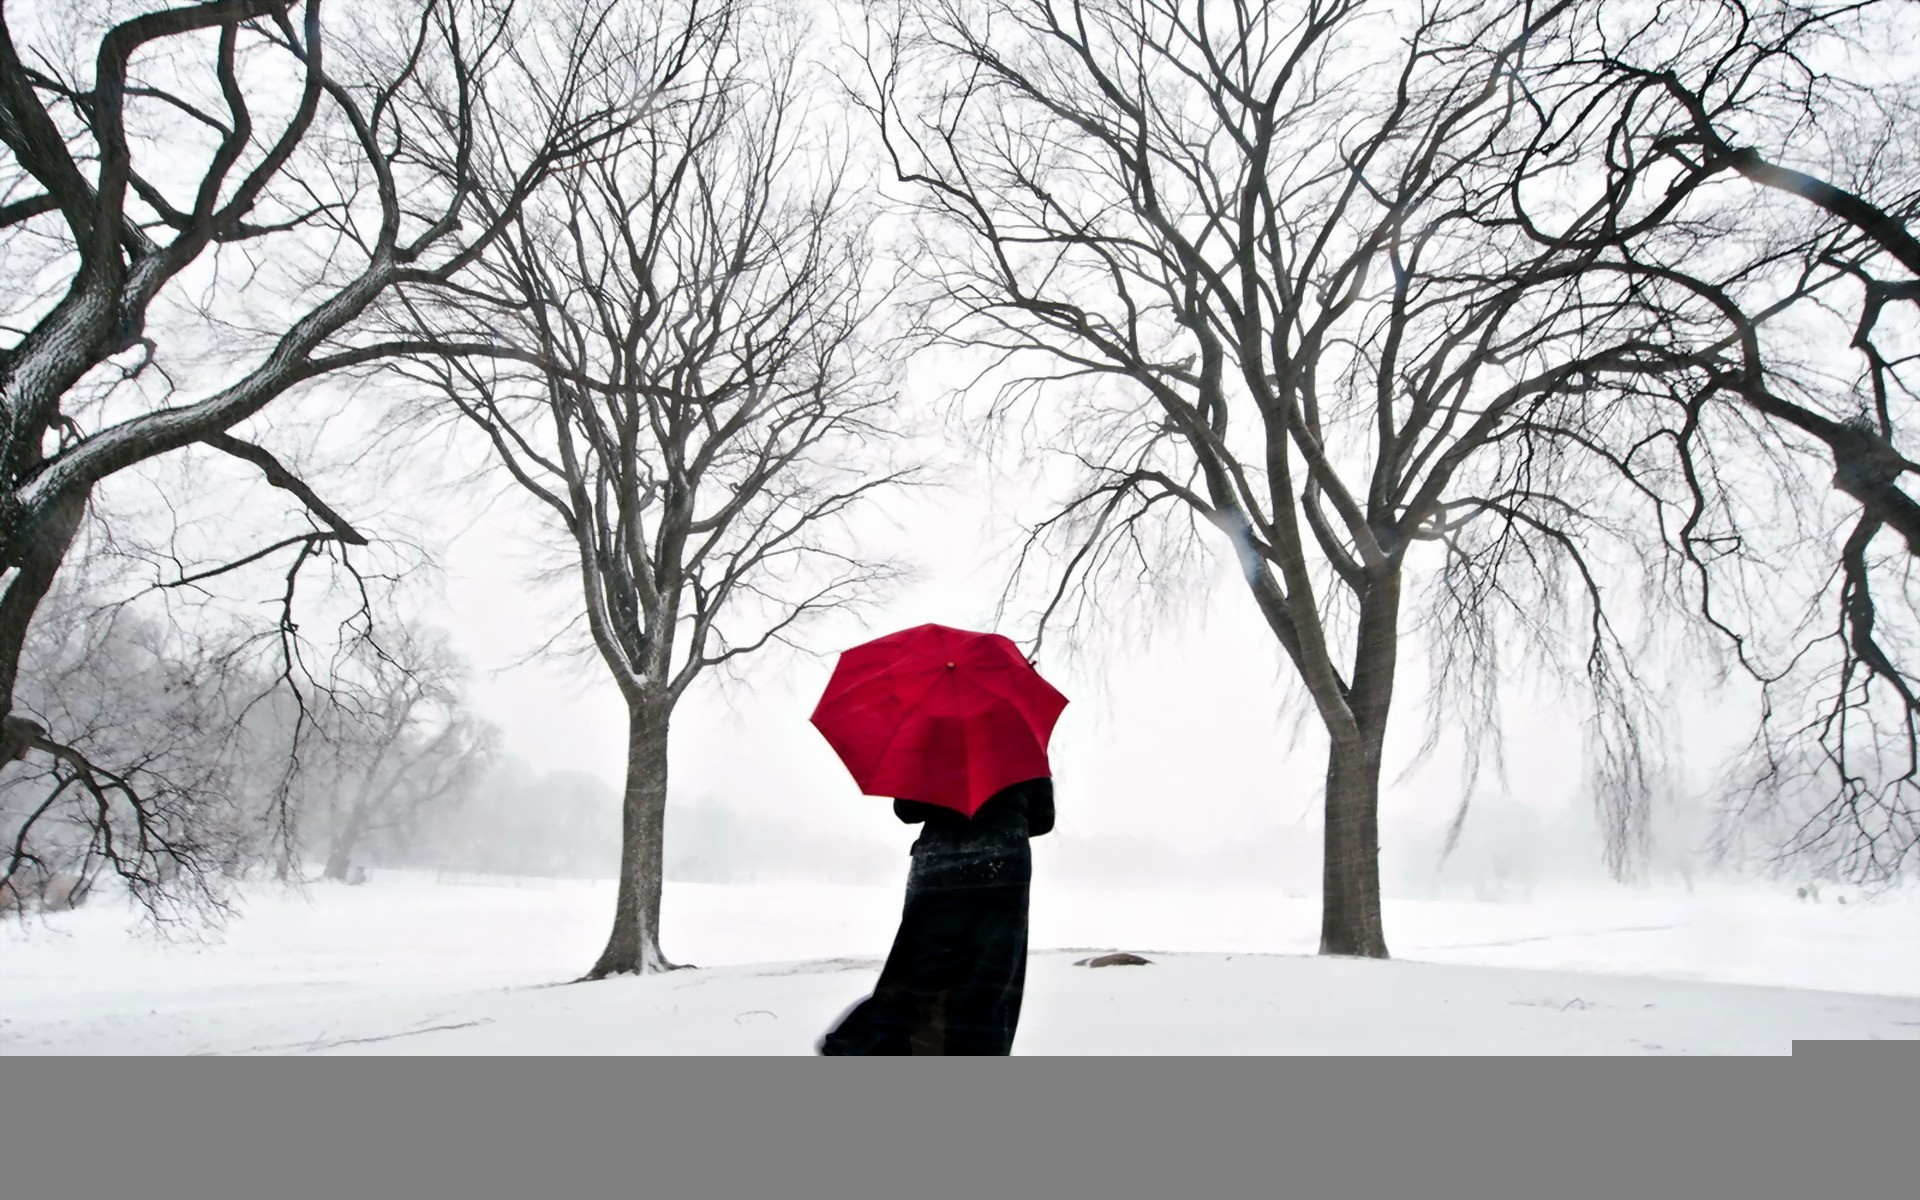 Umbrellas lonely Trees snow HD Wallpaper